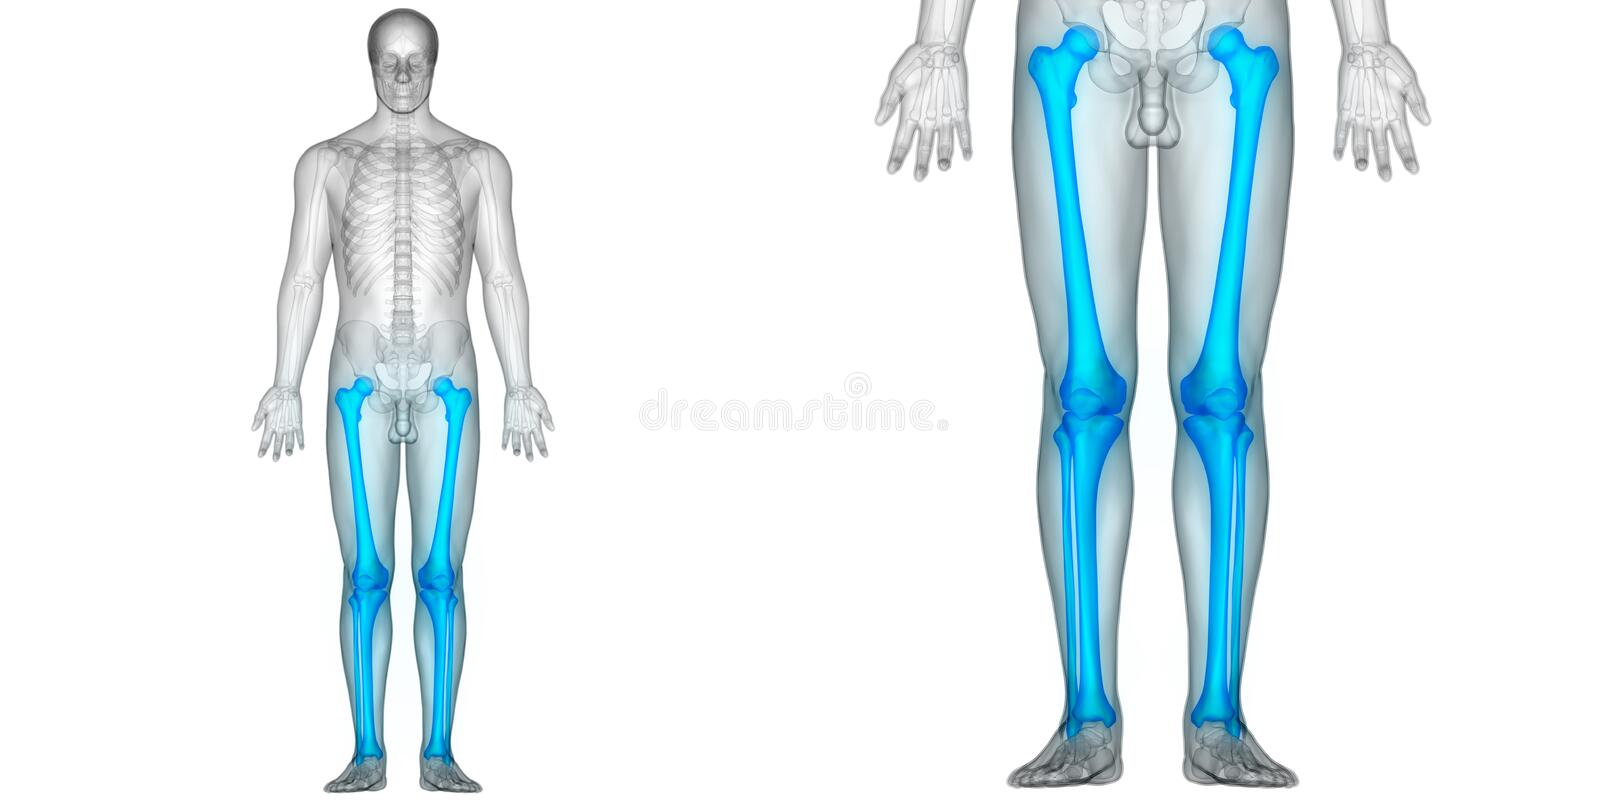 Human body bone joint pains anatomy femur with patella fibula and download human body bone joint pains anatomy femur with patella fibula and tibia bones stock ccuart Image collections